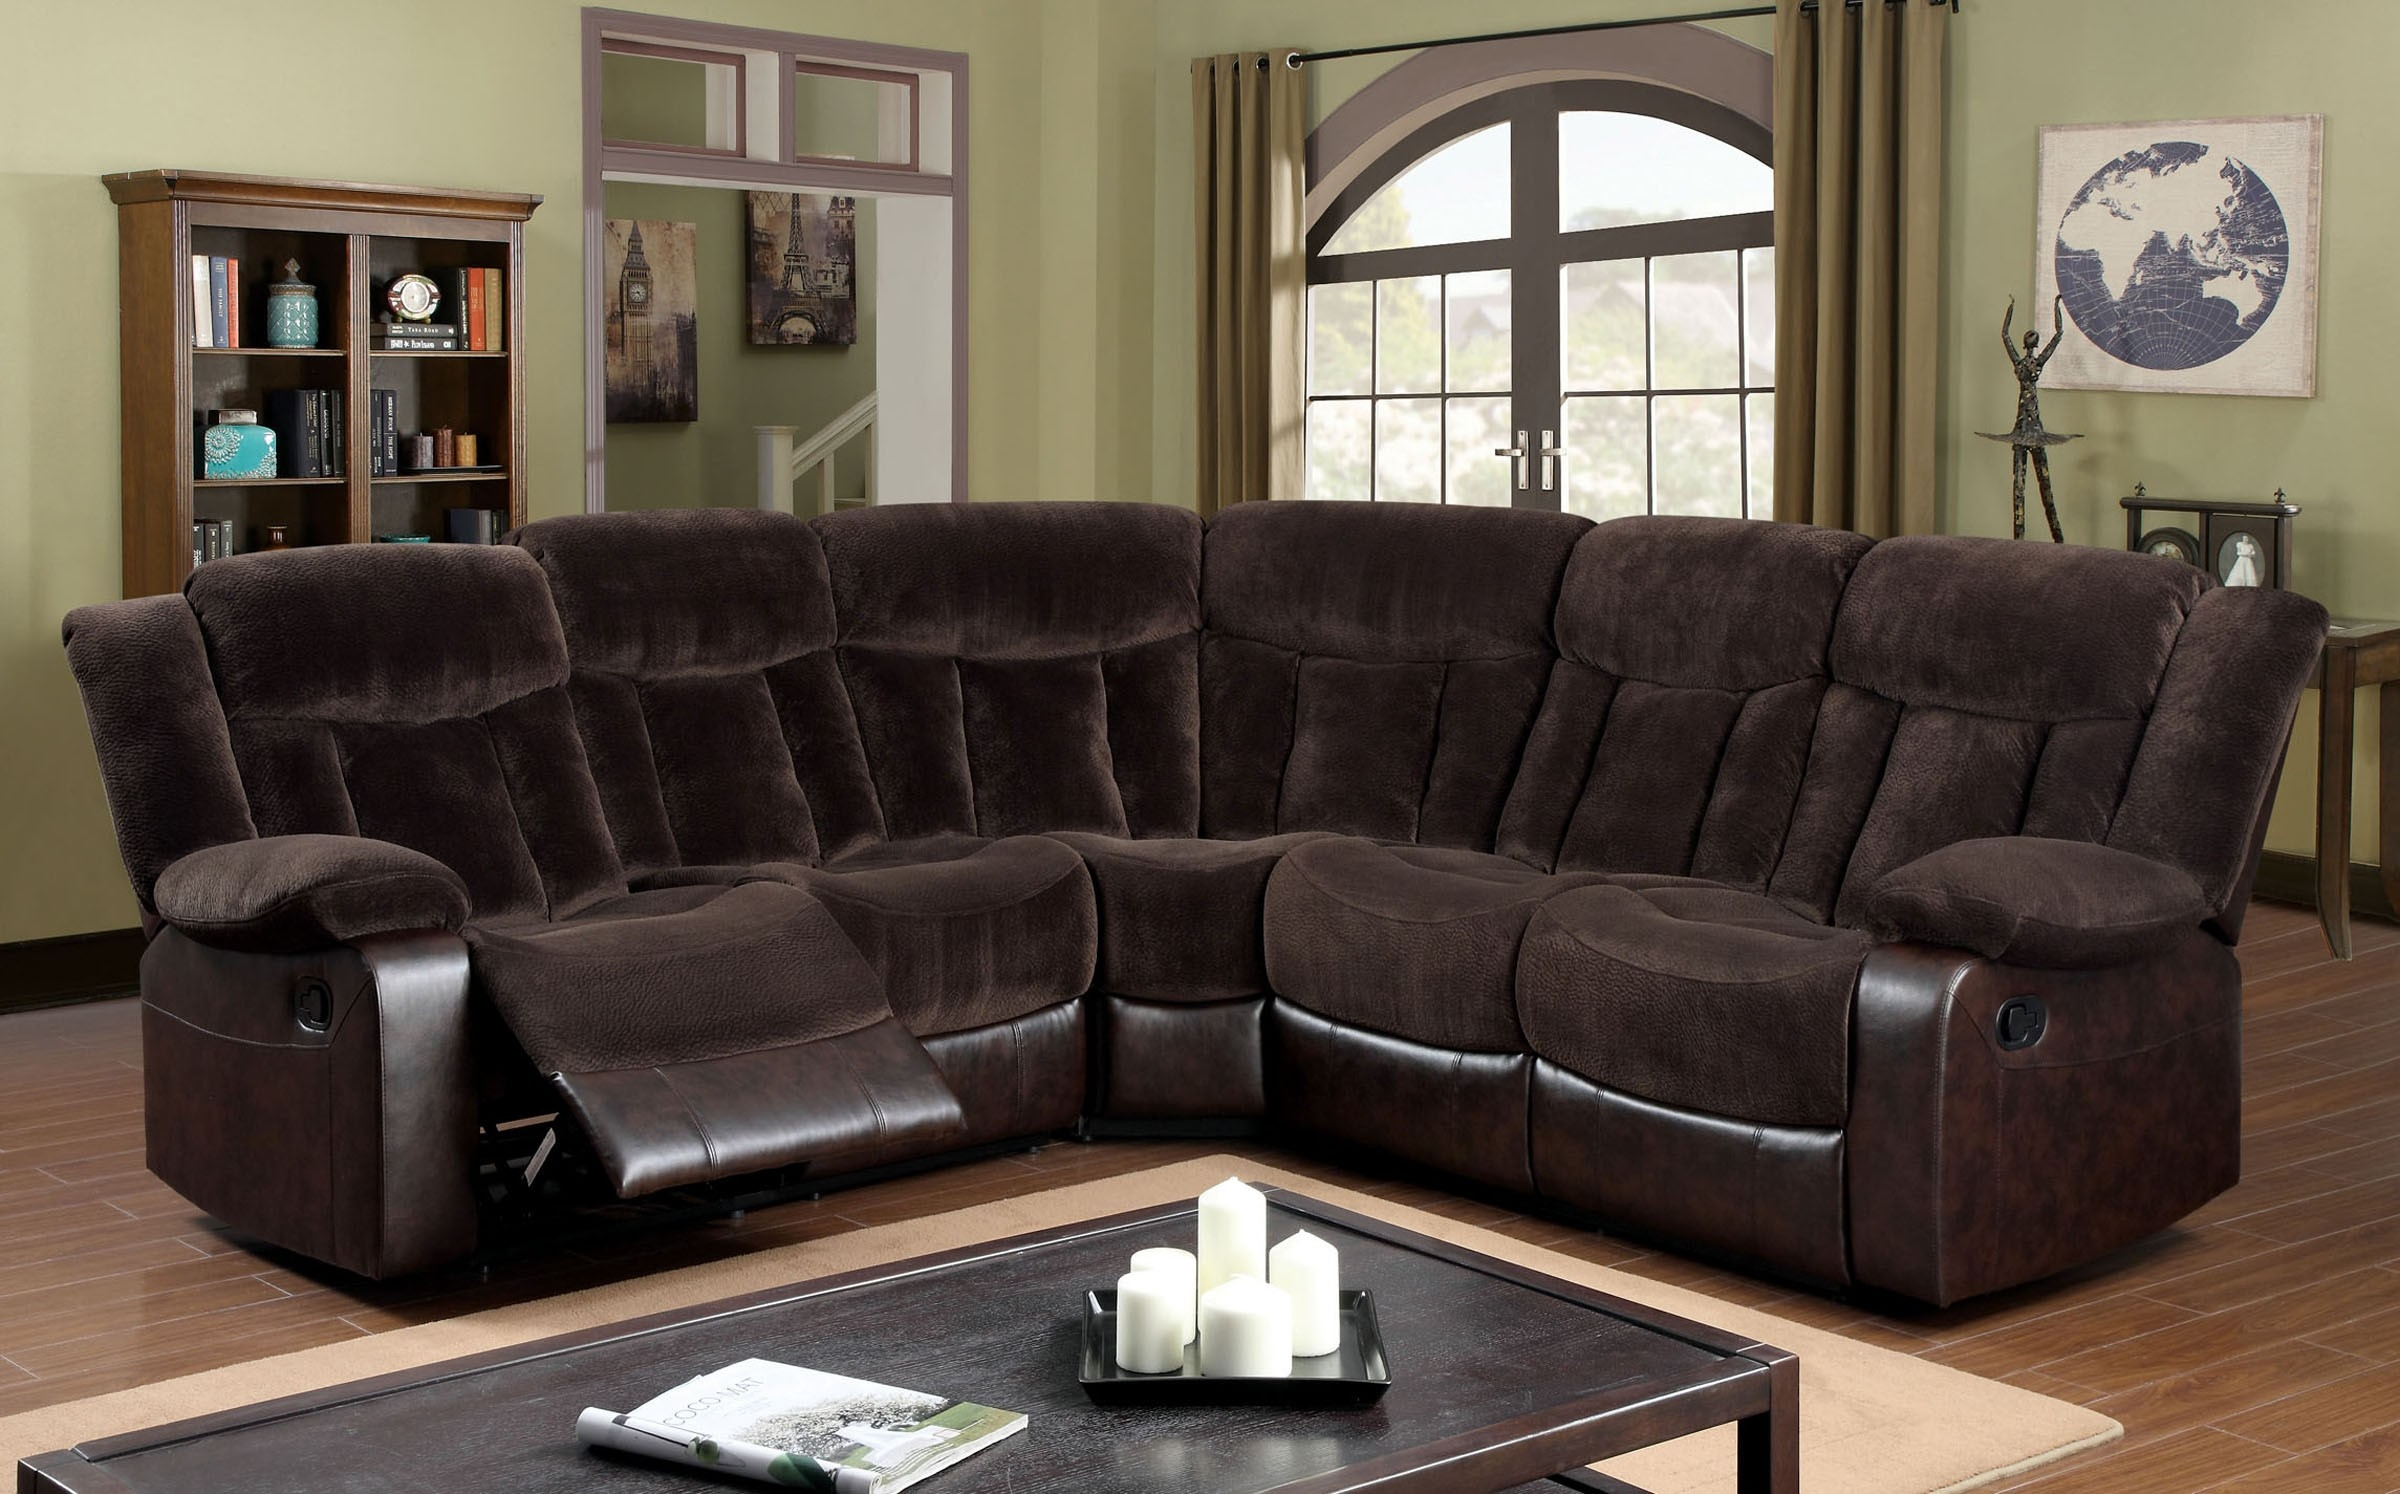 Furniture Of America Cm6809 Hampshire Transitional Brown Champion Regarding Champion Sectional Sofa (Image 7 of 15)